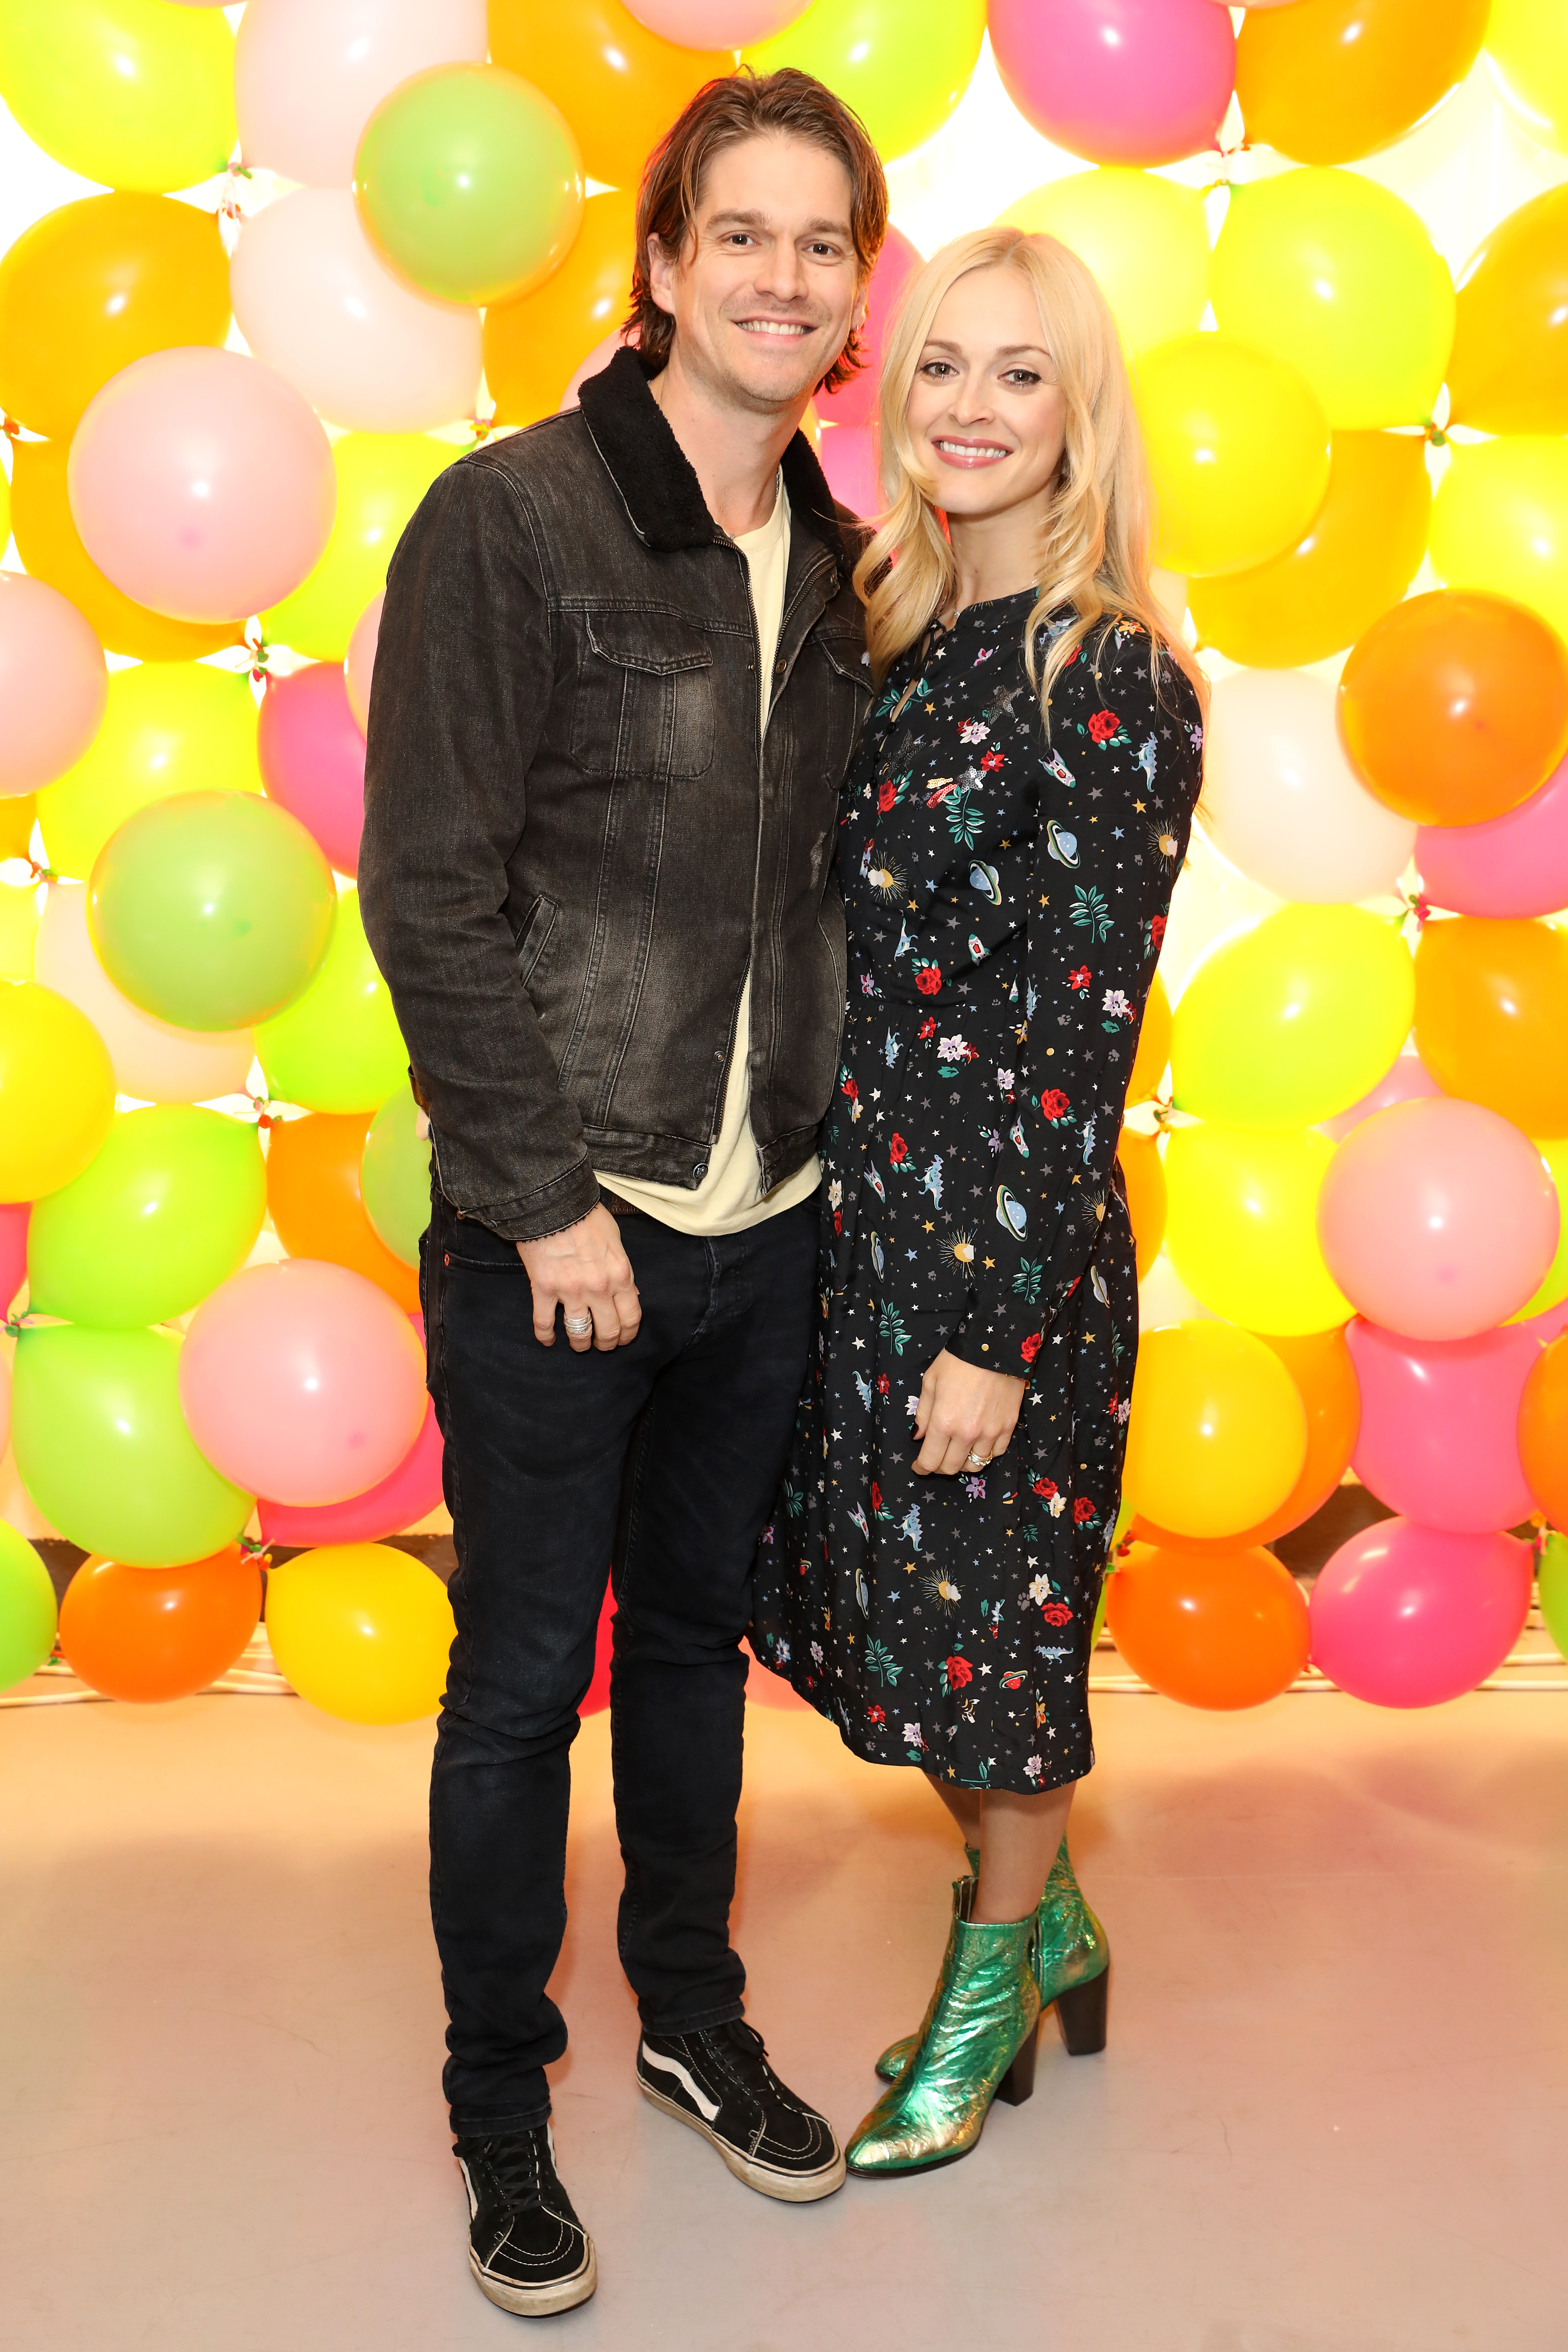 LONDON, ENGLAND - OCTOBER 25: Jesse Wood (L) and Fearne Cotton attend as Fearne Cotton celebrates her new collaboration with Cath Kidston at the Vinyl Factory on October 25, 2018 in London, England. (Photo by Darren Gerrish/WireImage)